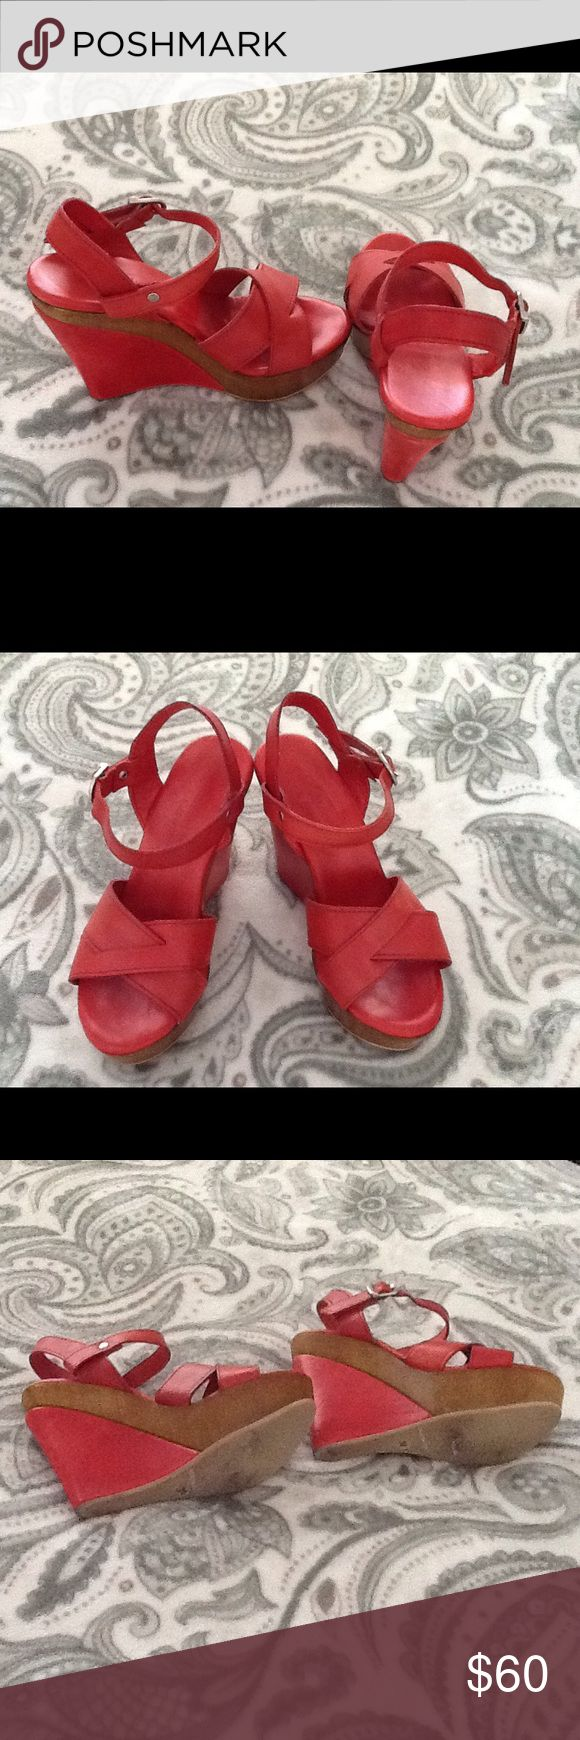 👠Price Reduction👠Red Leather Platform Sandals👠 Gently used red Italian leather with wood inlay platform sandals. Great summer sandals!  4.25 wedge with 1 inch platform heels. Wear with sun dresses or skinny jeans. Charles David Shoes Platforms